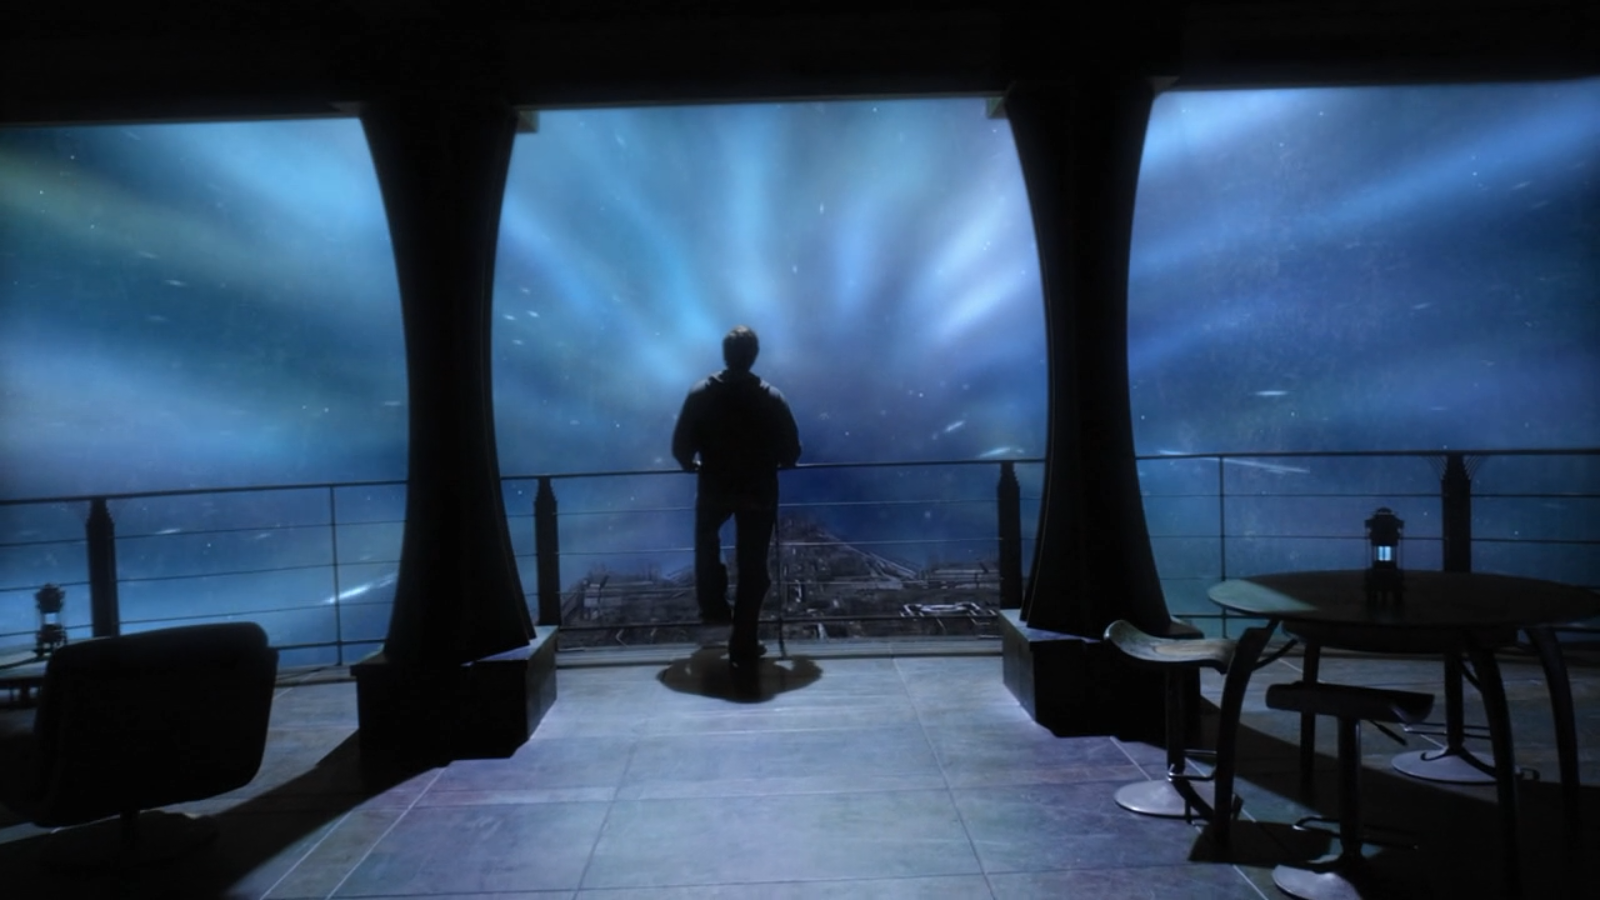 Eli looks out over a railing in a shot very similar to the last of Atlantis--but far more depressing.